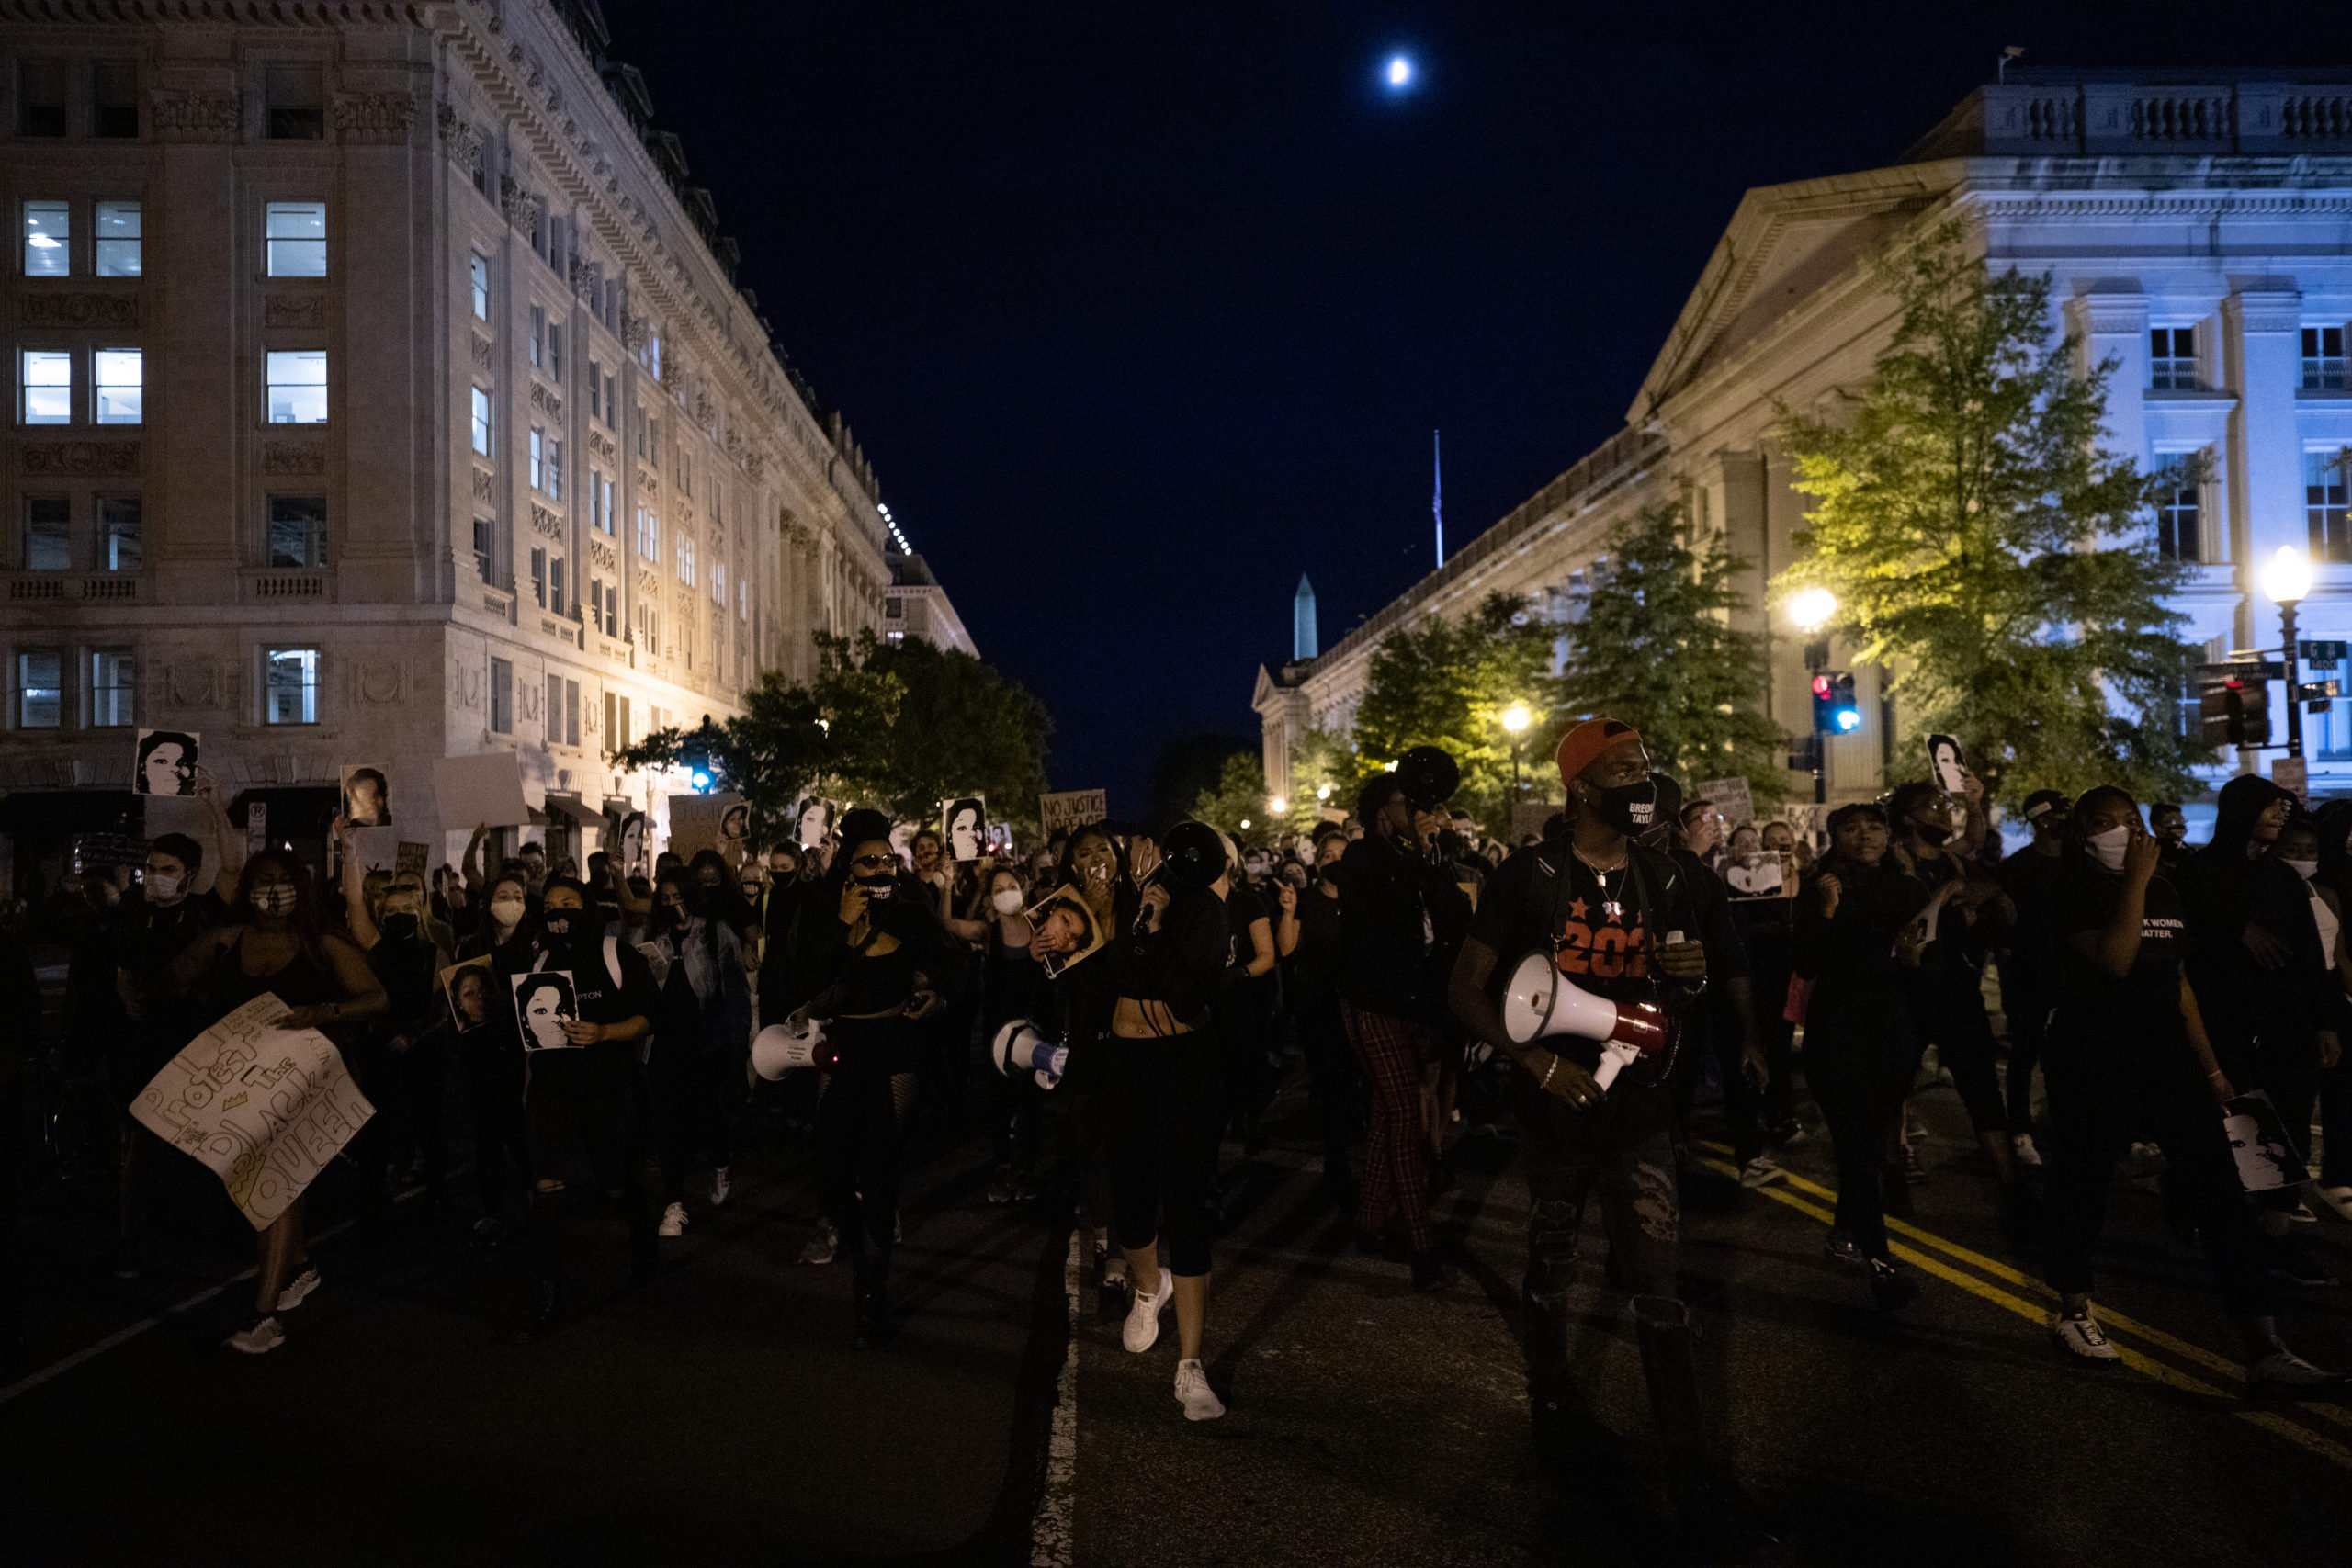 Protesters marched from the Department of Justice to Black Lives Matter Plaza for Breonna Taylor in Washington, D.C. on Sept. 23. (Photo: Kaylee Greenlee / DCNF)